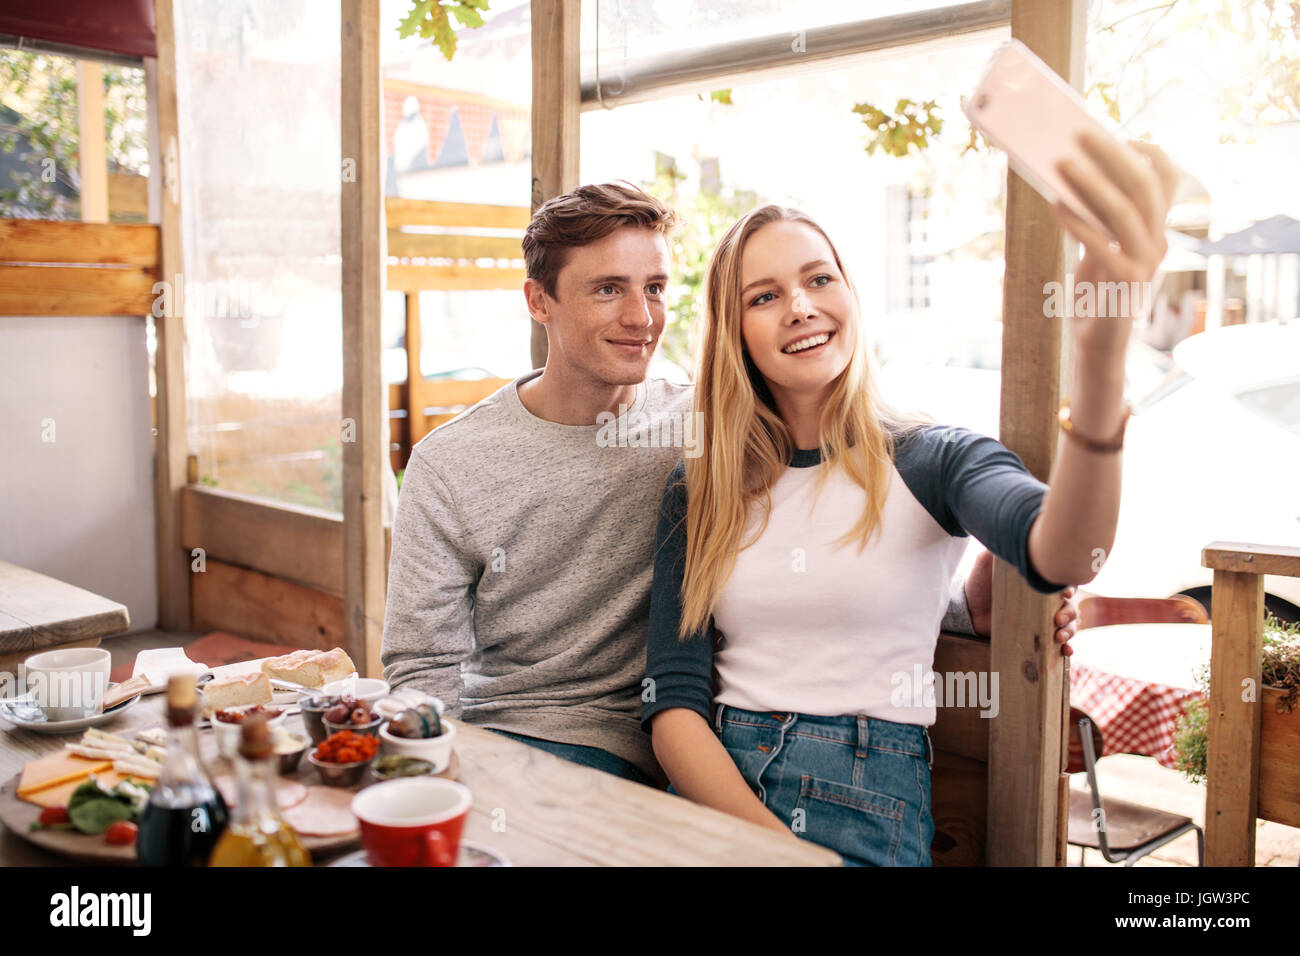 Couple taking photos of themselves with mobile phone in cafe. Stylish young couple catching memories by smart phone. - Stock Image